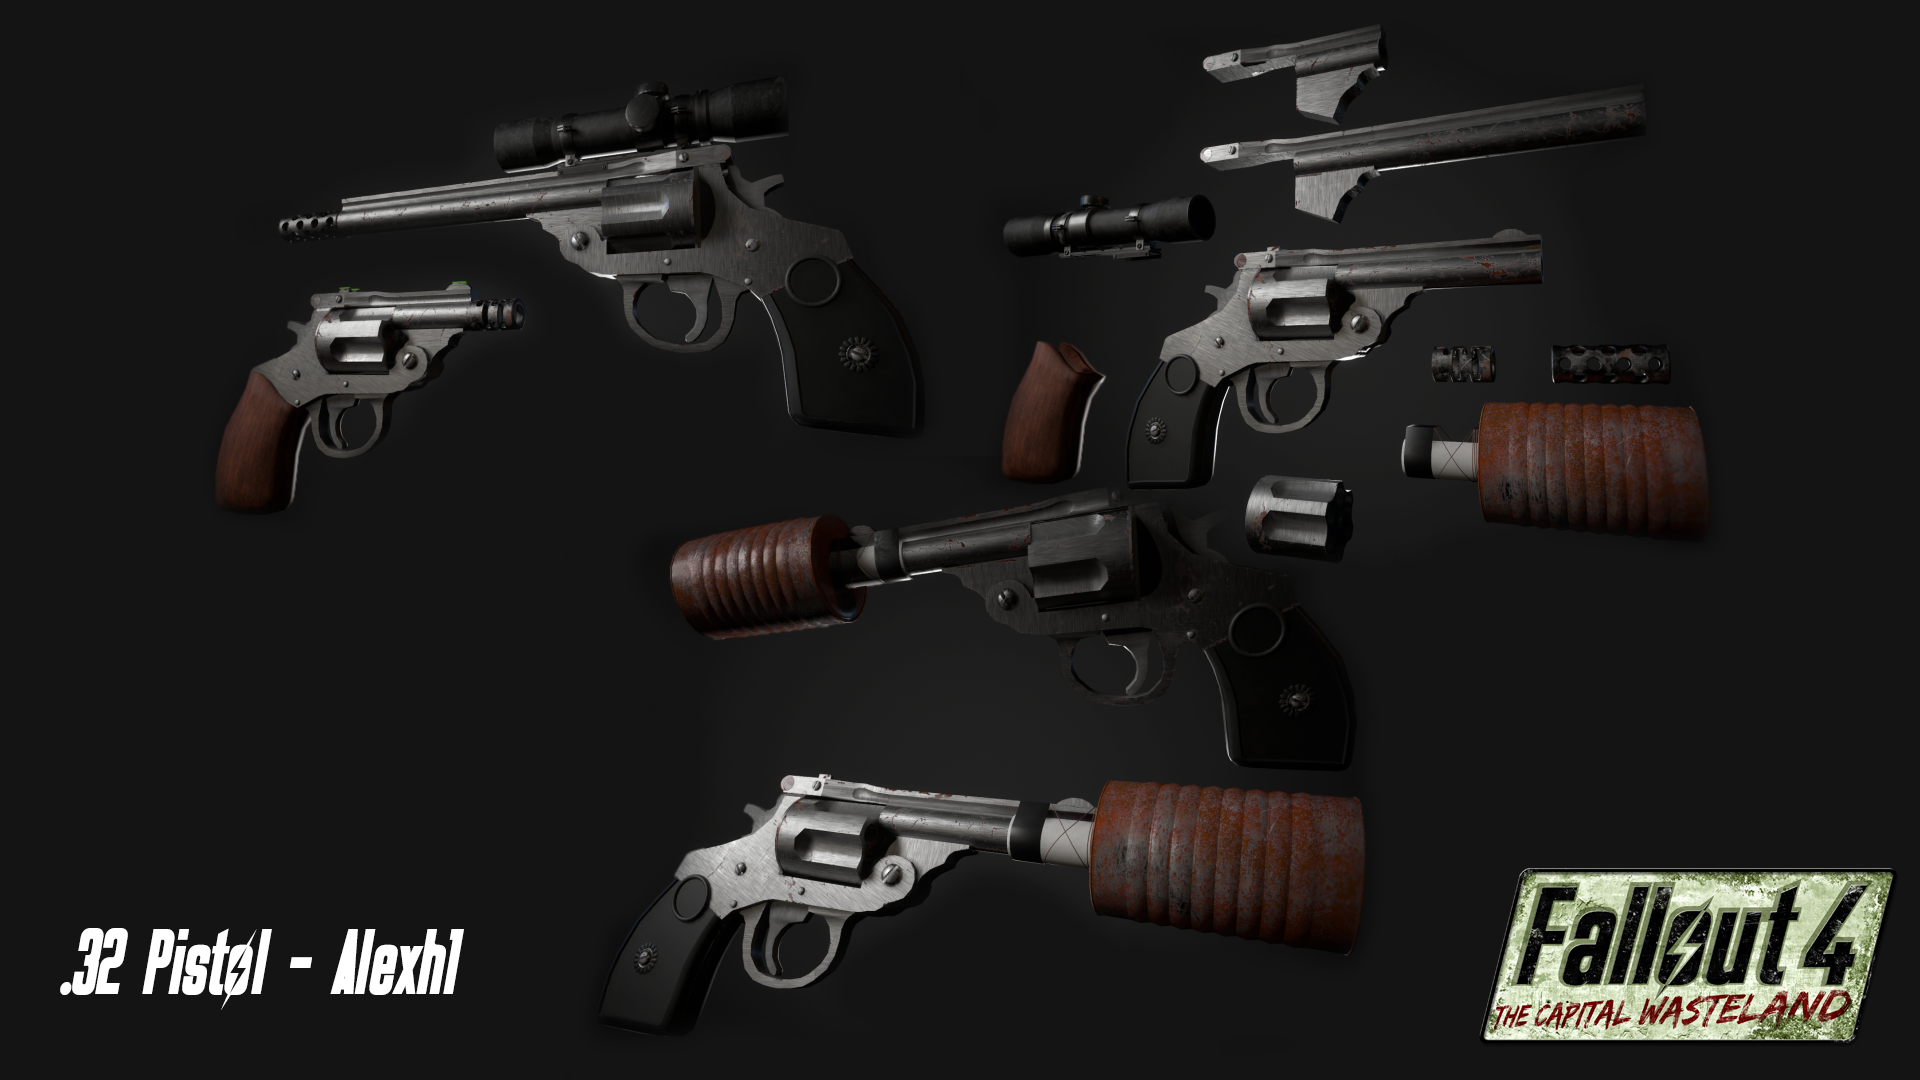 Alexh1 showcases the .32 Pistol and associated Weapon Mods